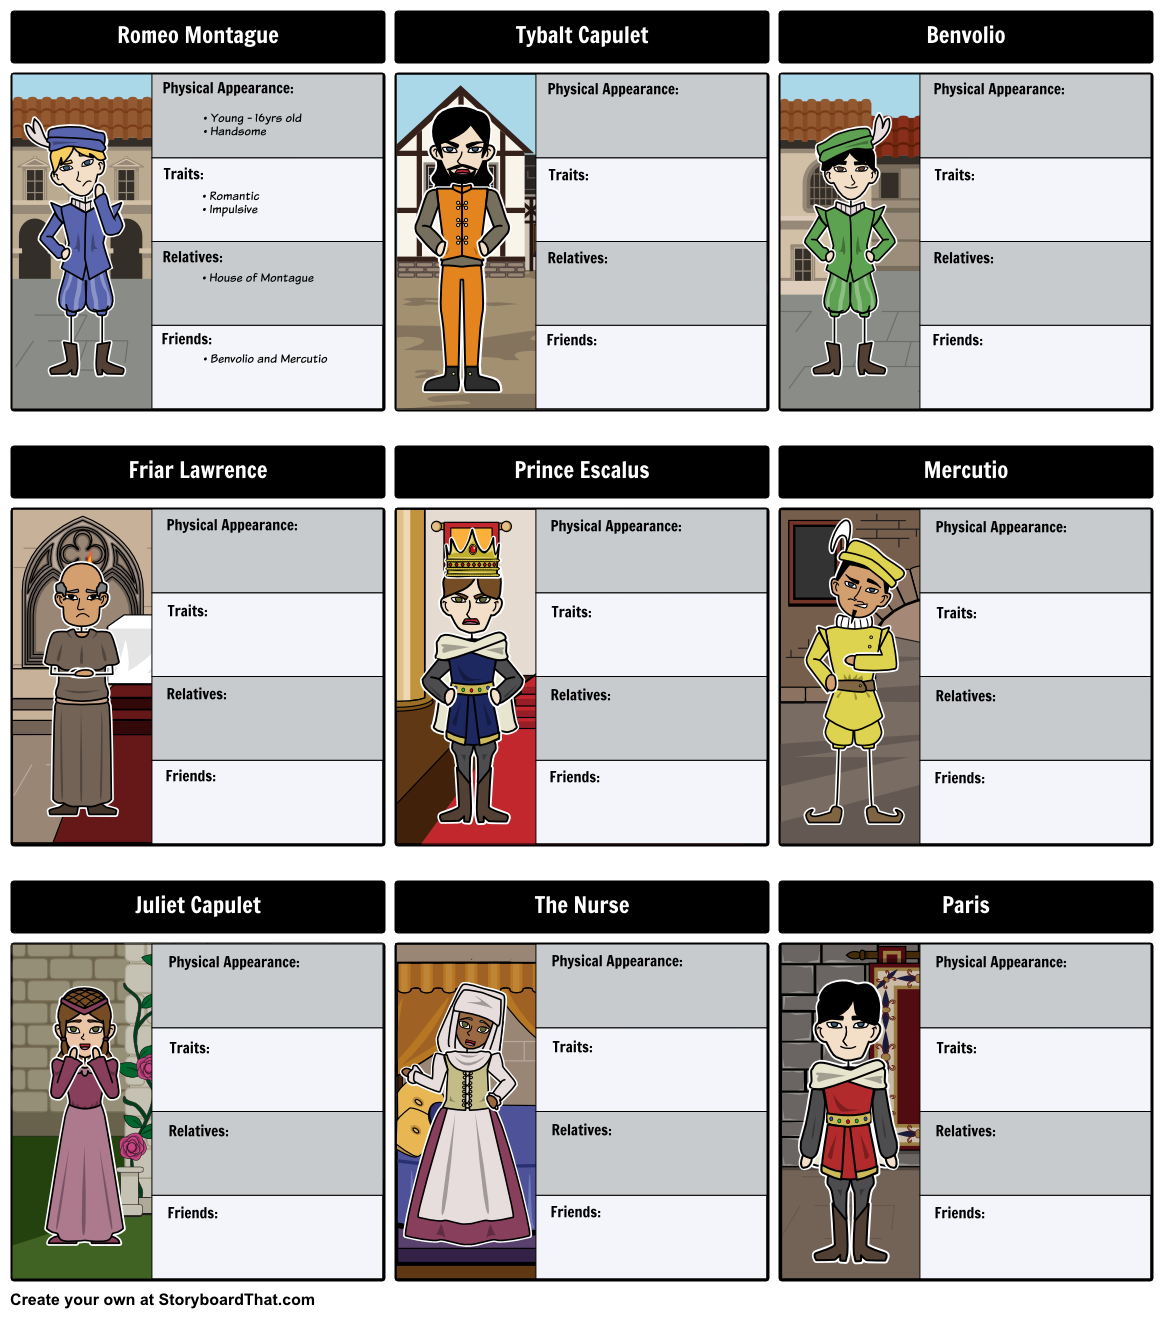 romeo and juliet comics and activities to use while reading the the tragedy of romeo and juliet character map a complete character map for the